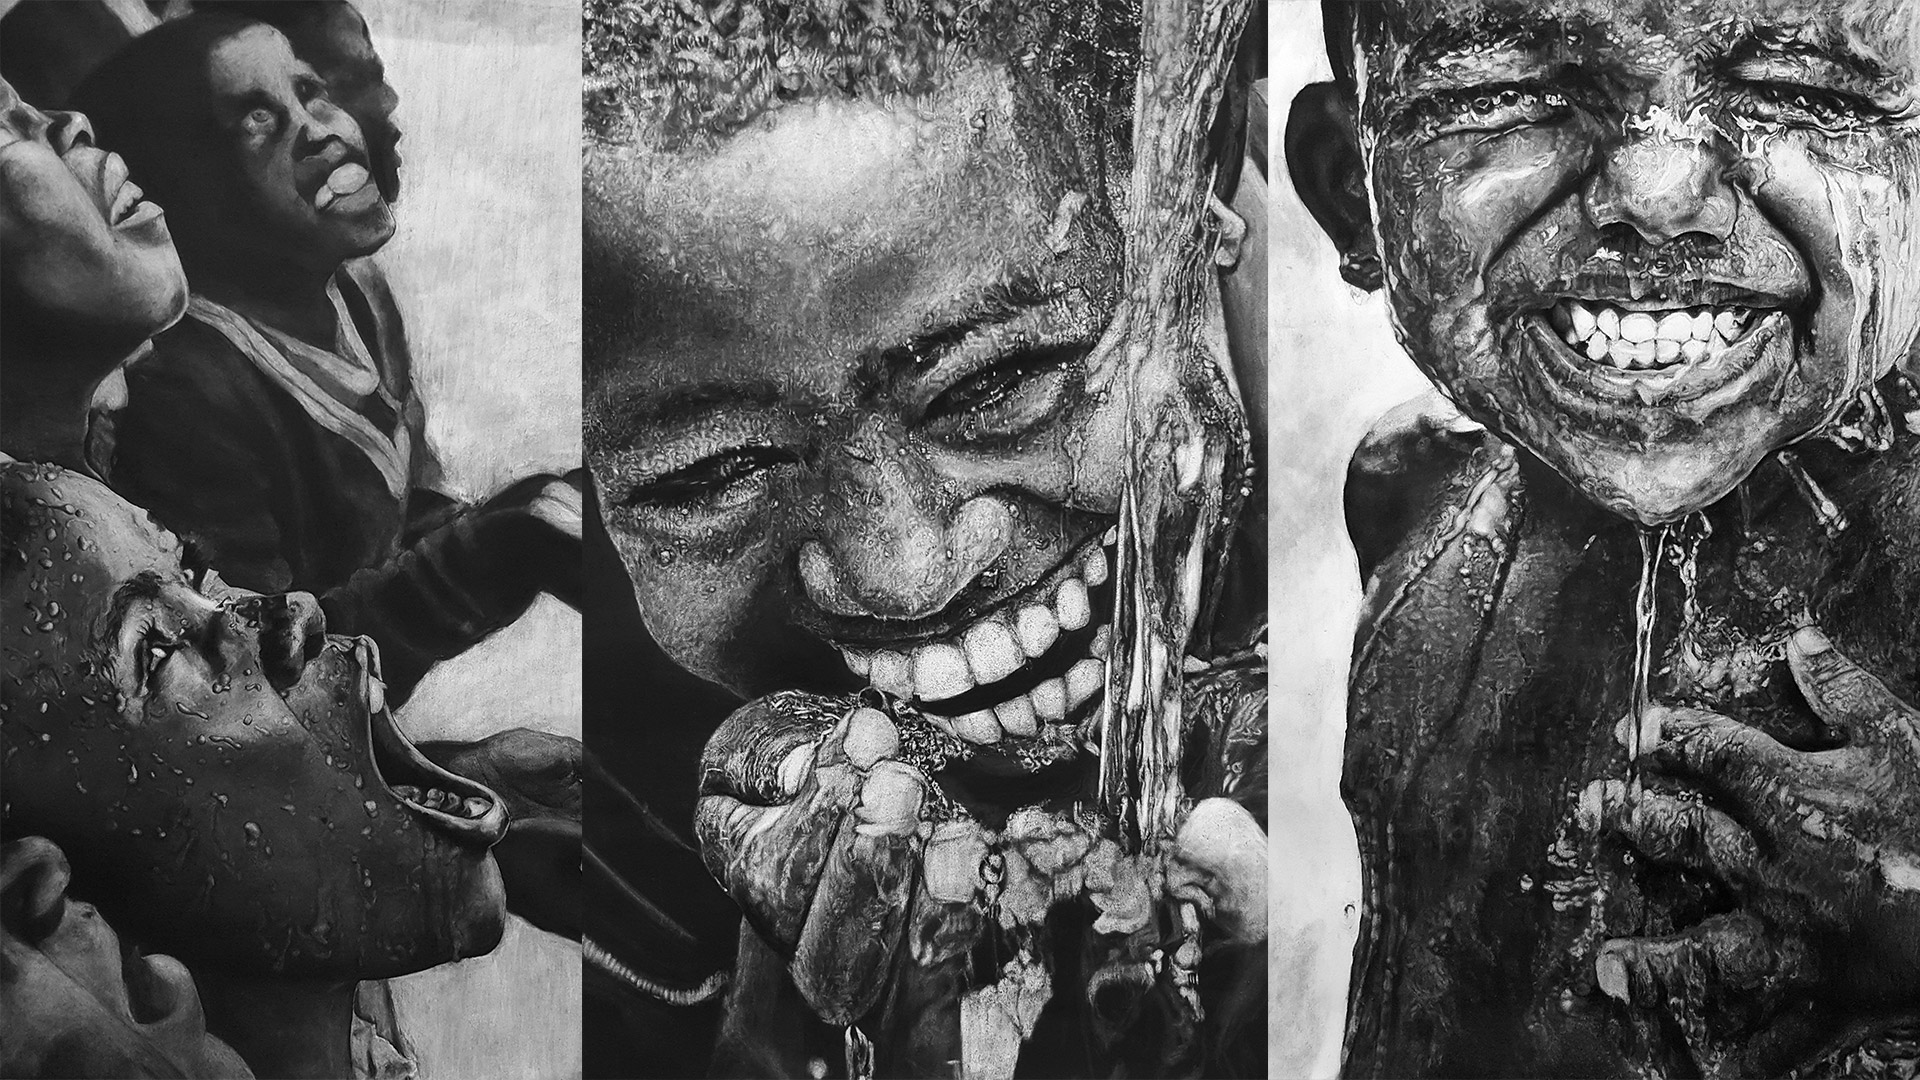 Hyper realism charcoal drawing